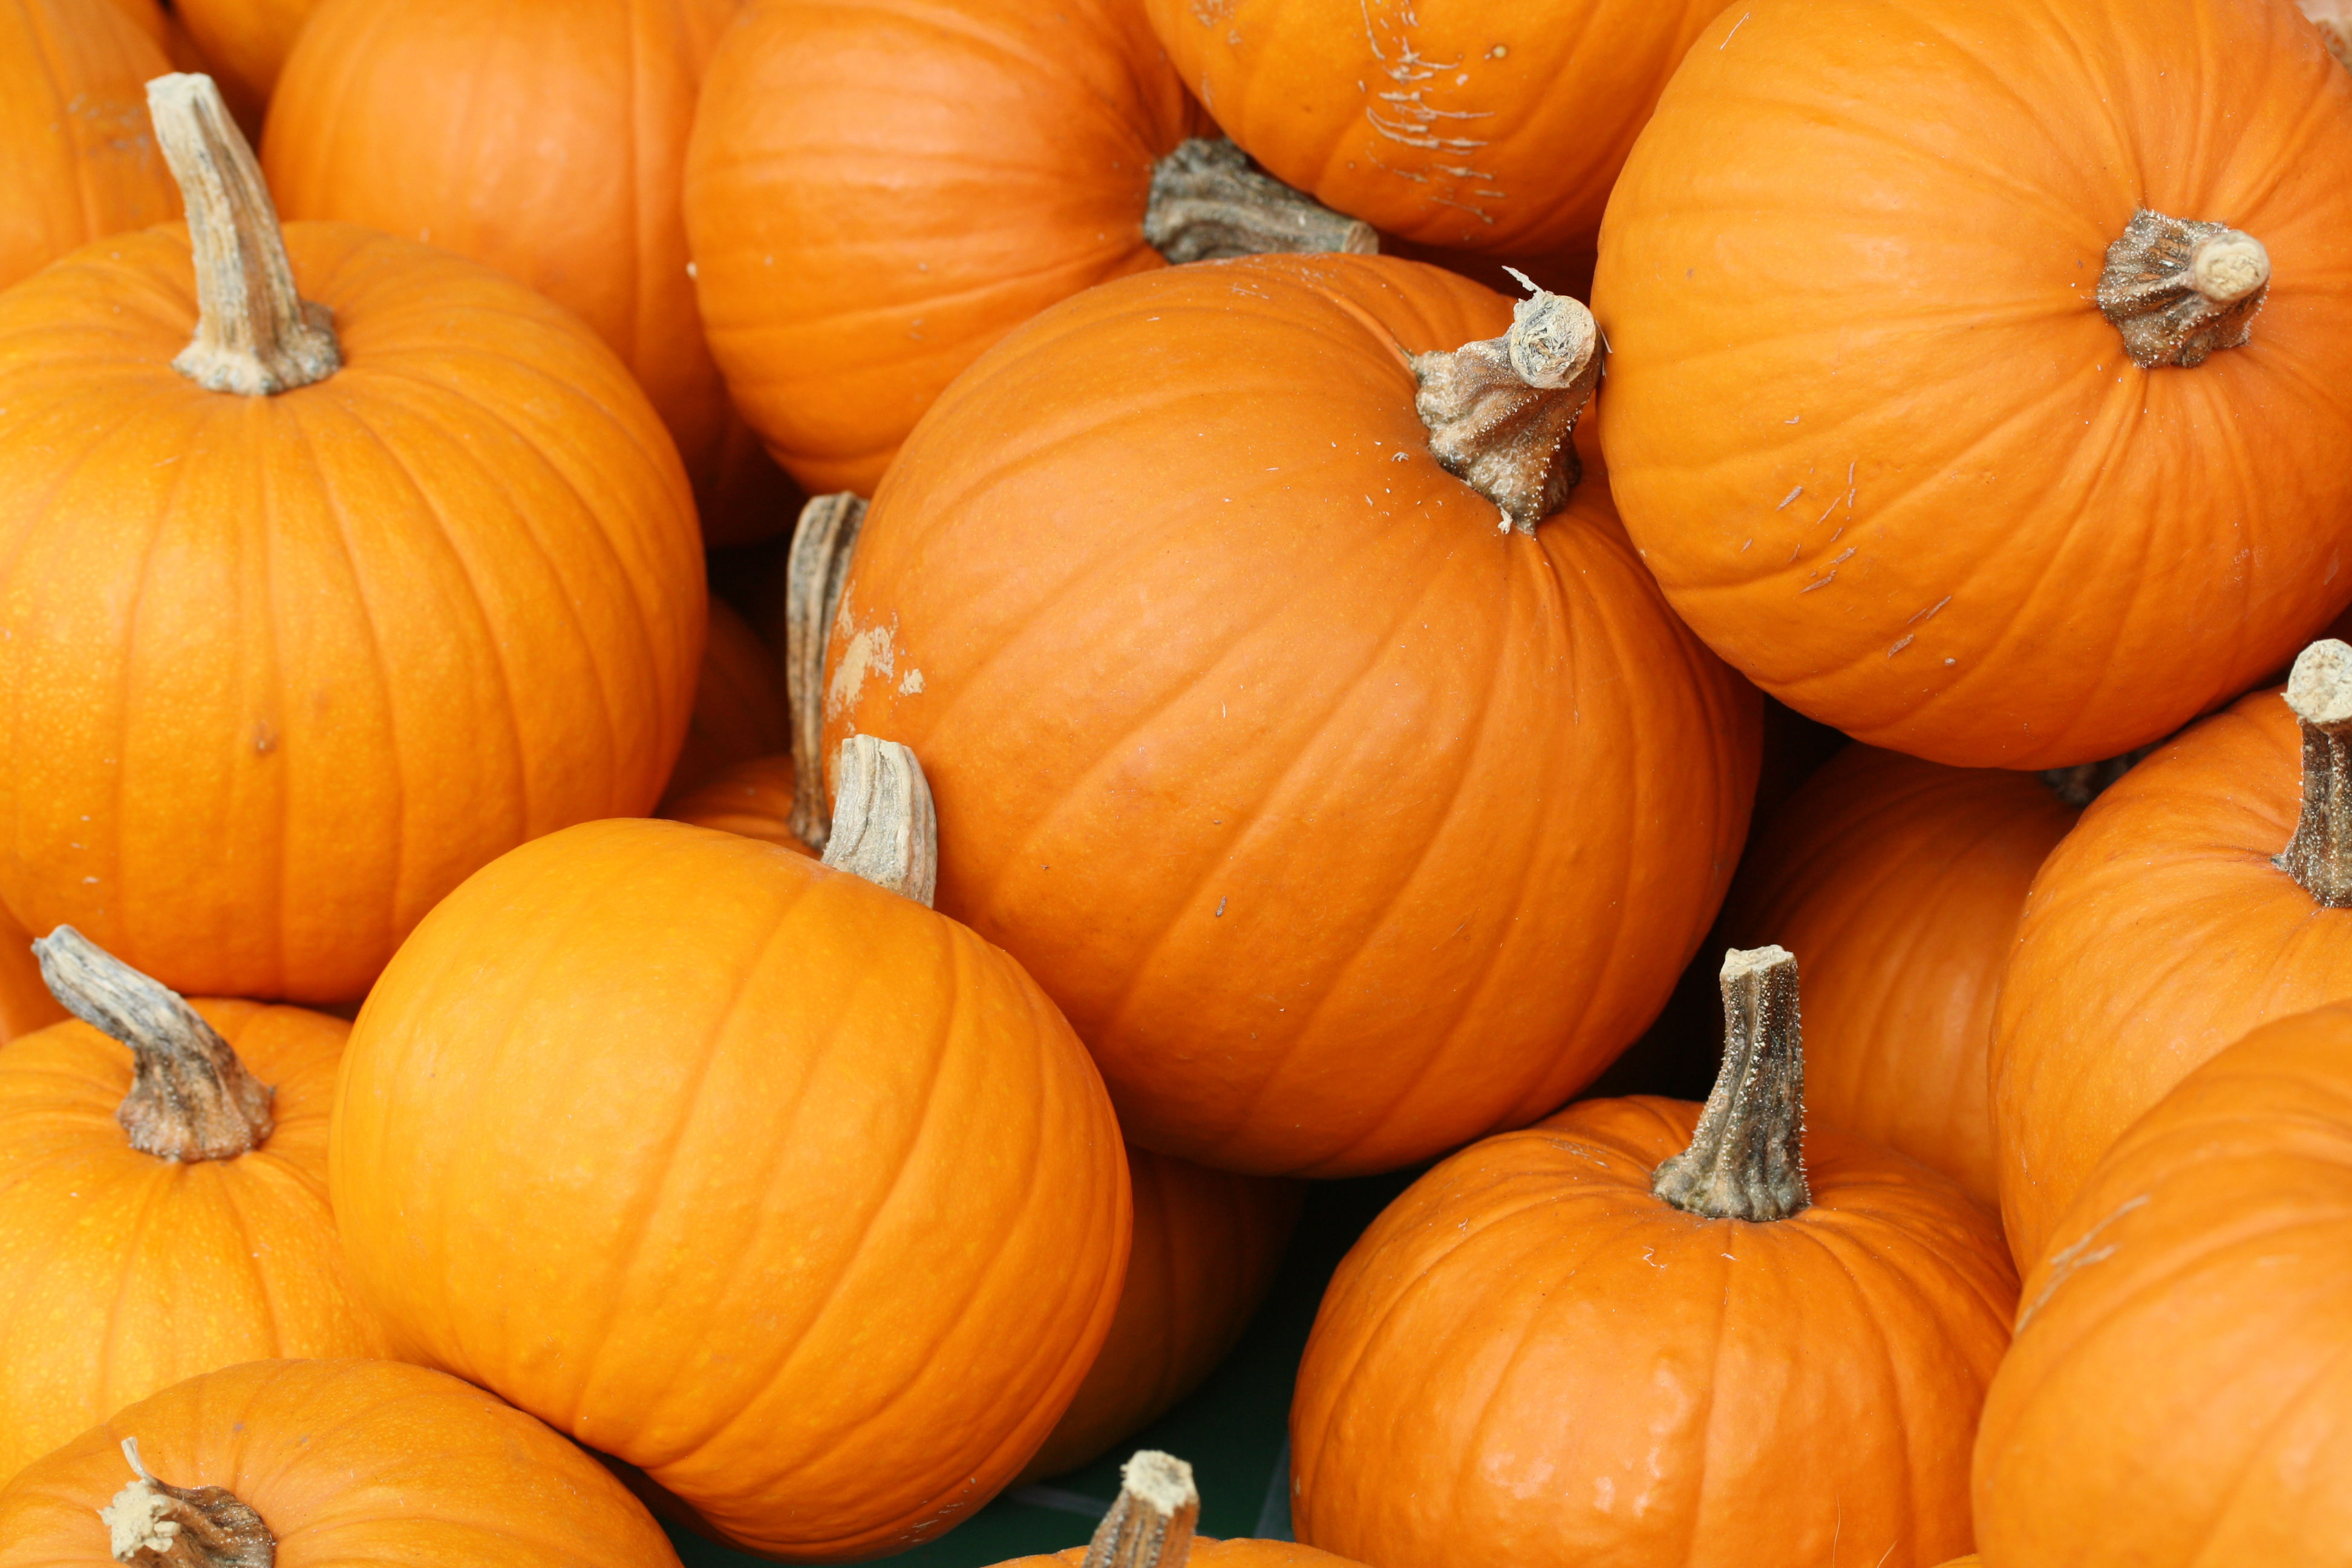 41af8be76b759abba677_bake_these__pumpkins_in_toronto_.jpg